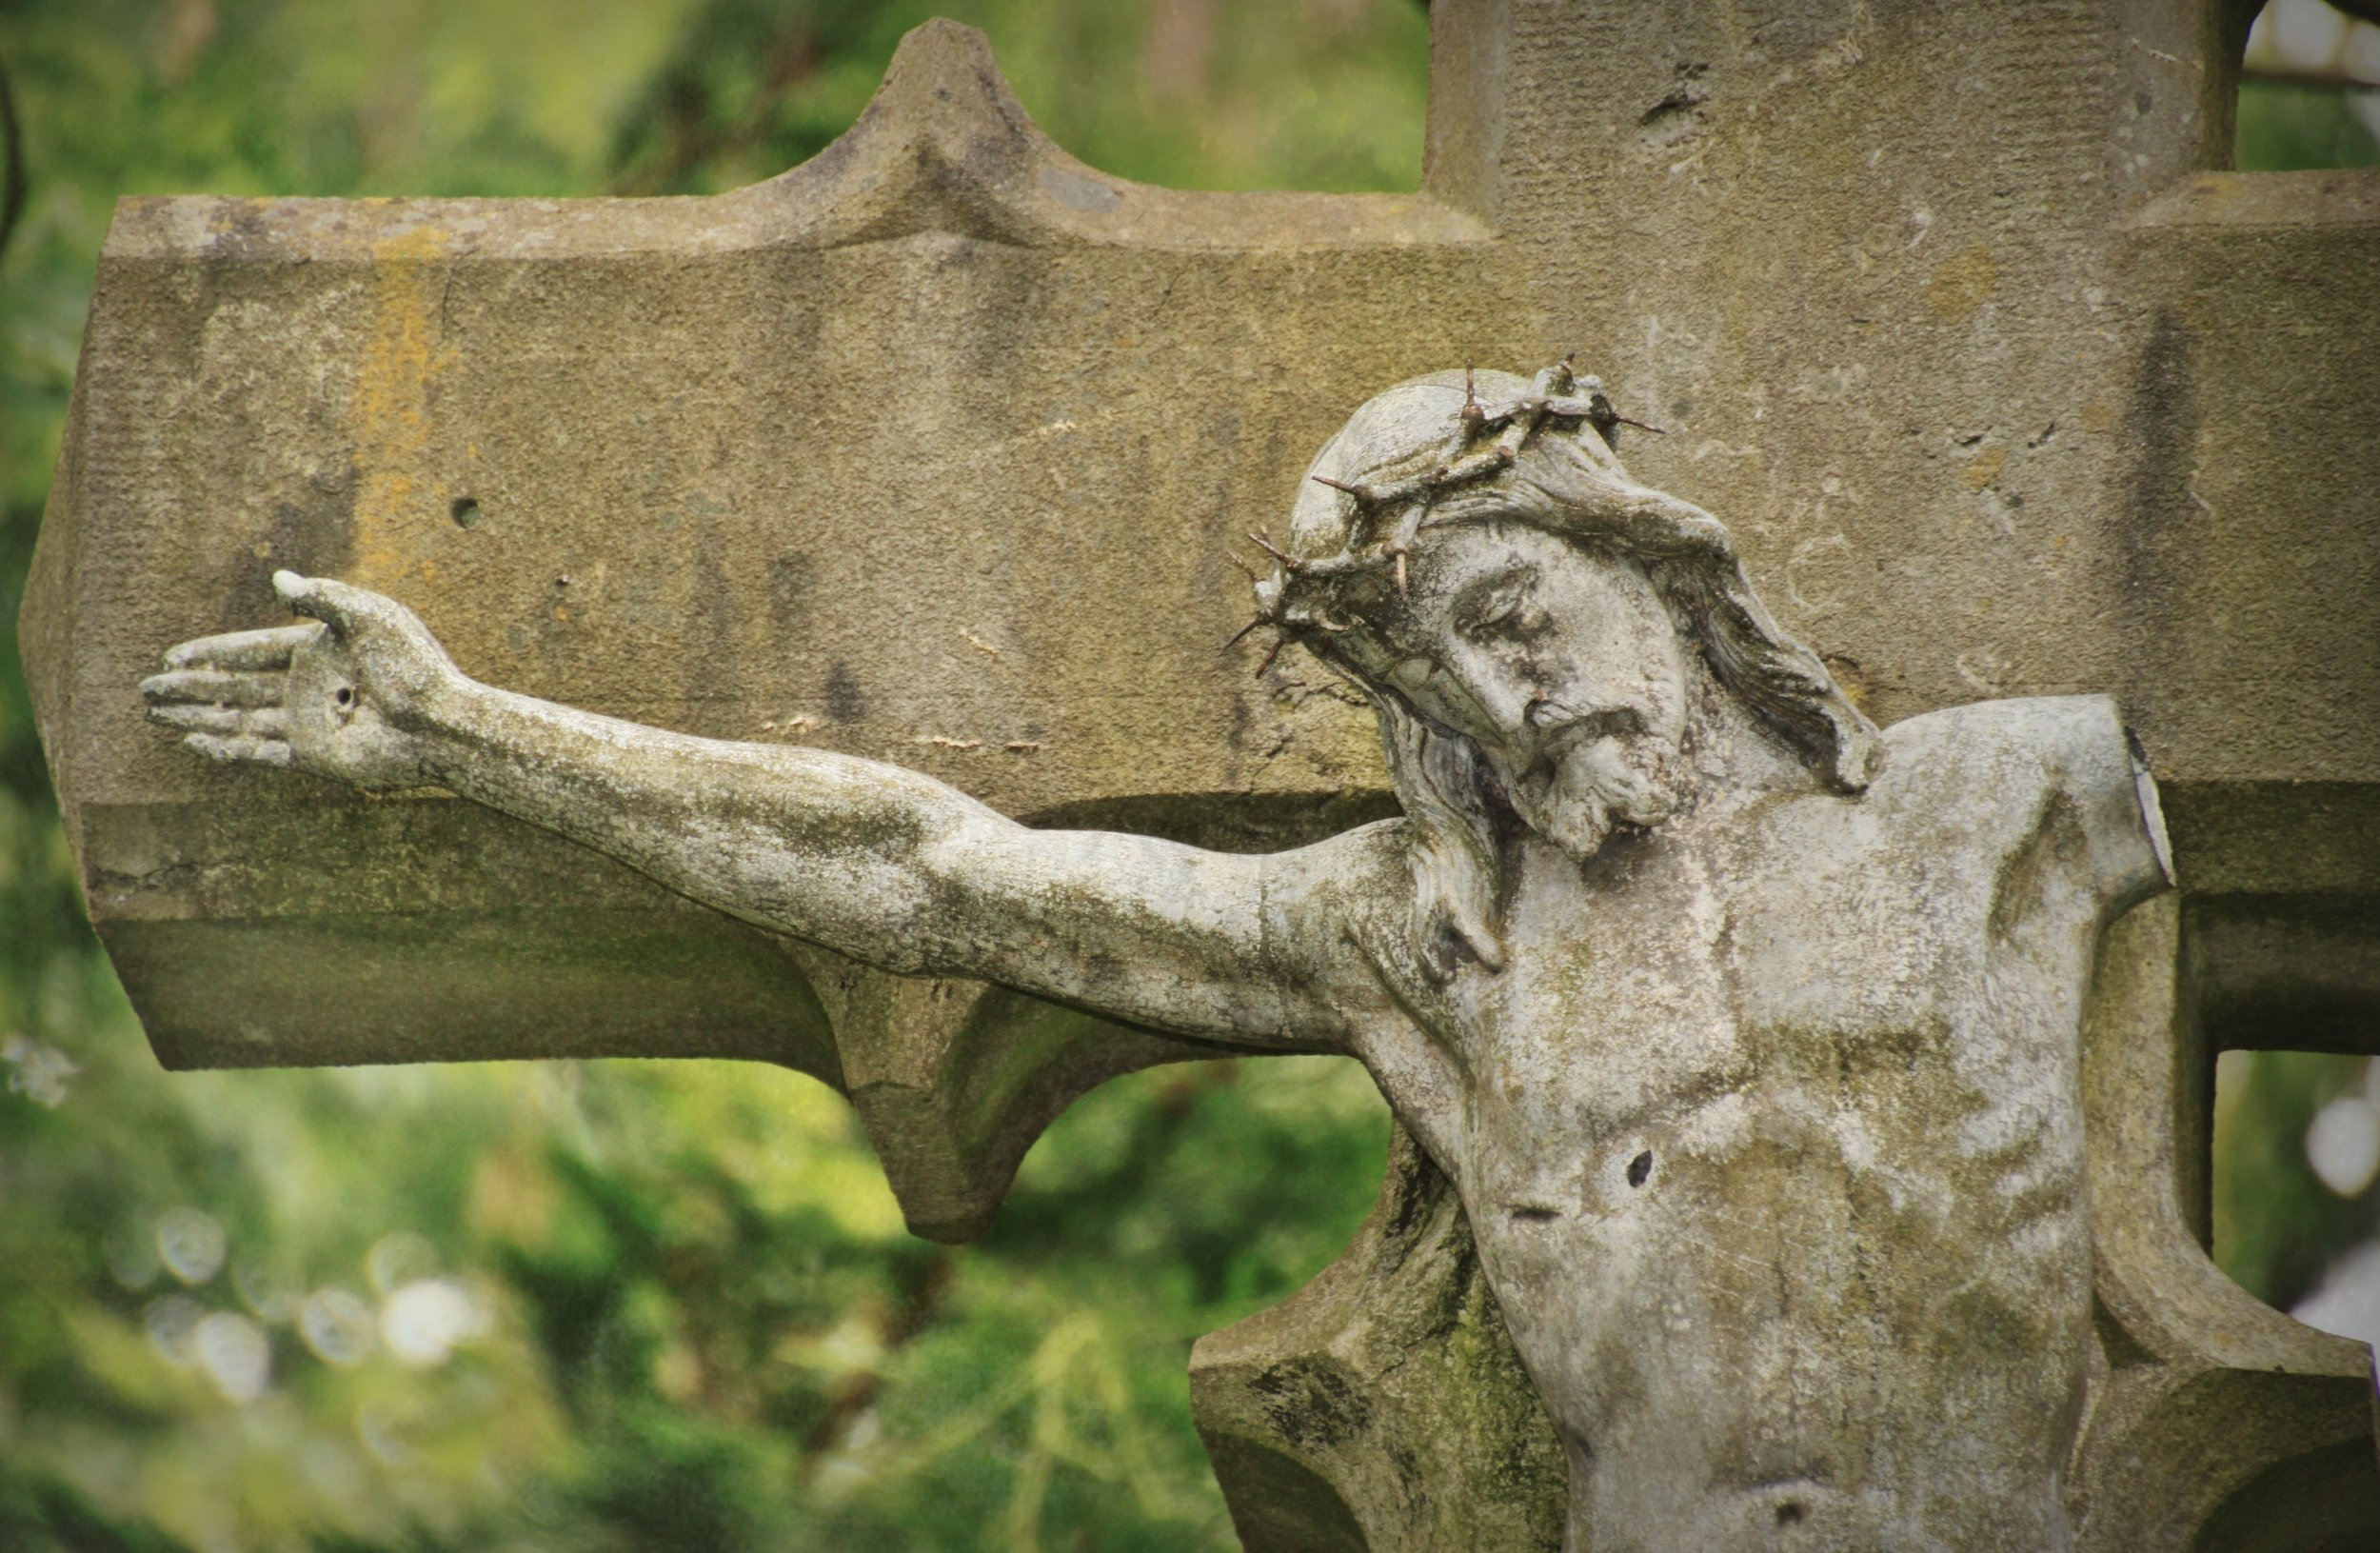 Atonement Theology 101 - The Meaning of Jesus' Death